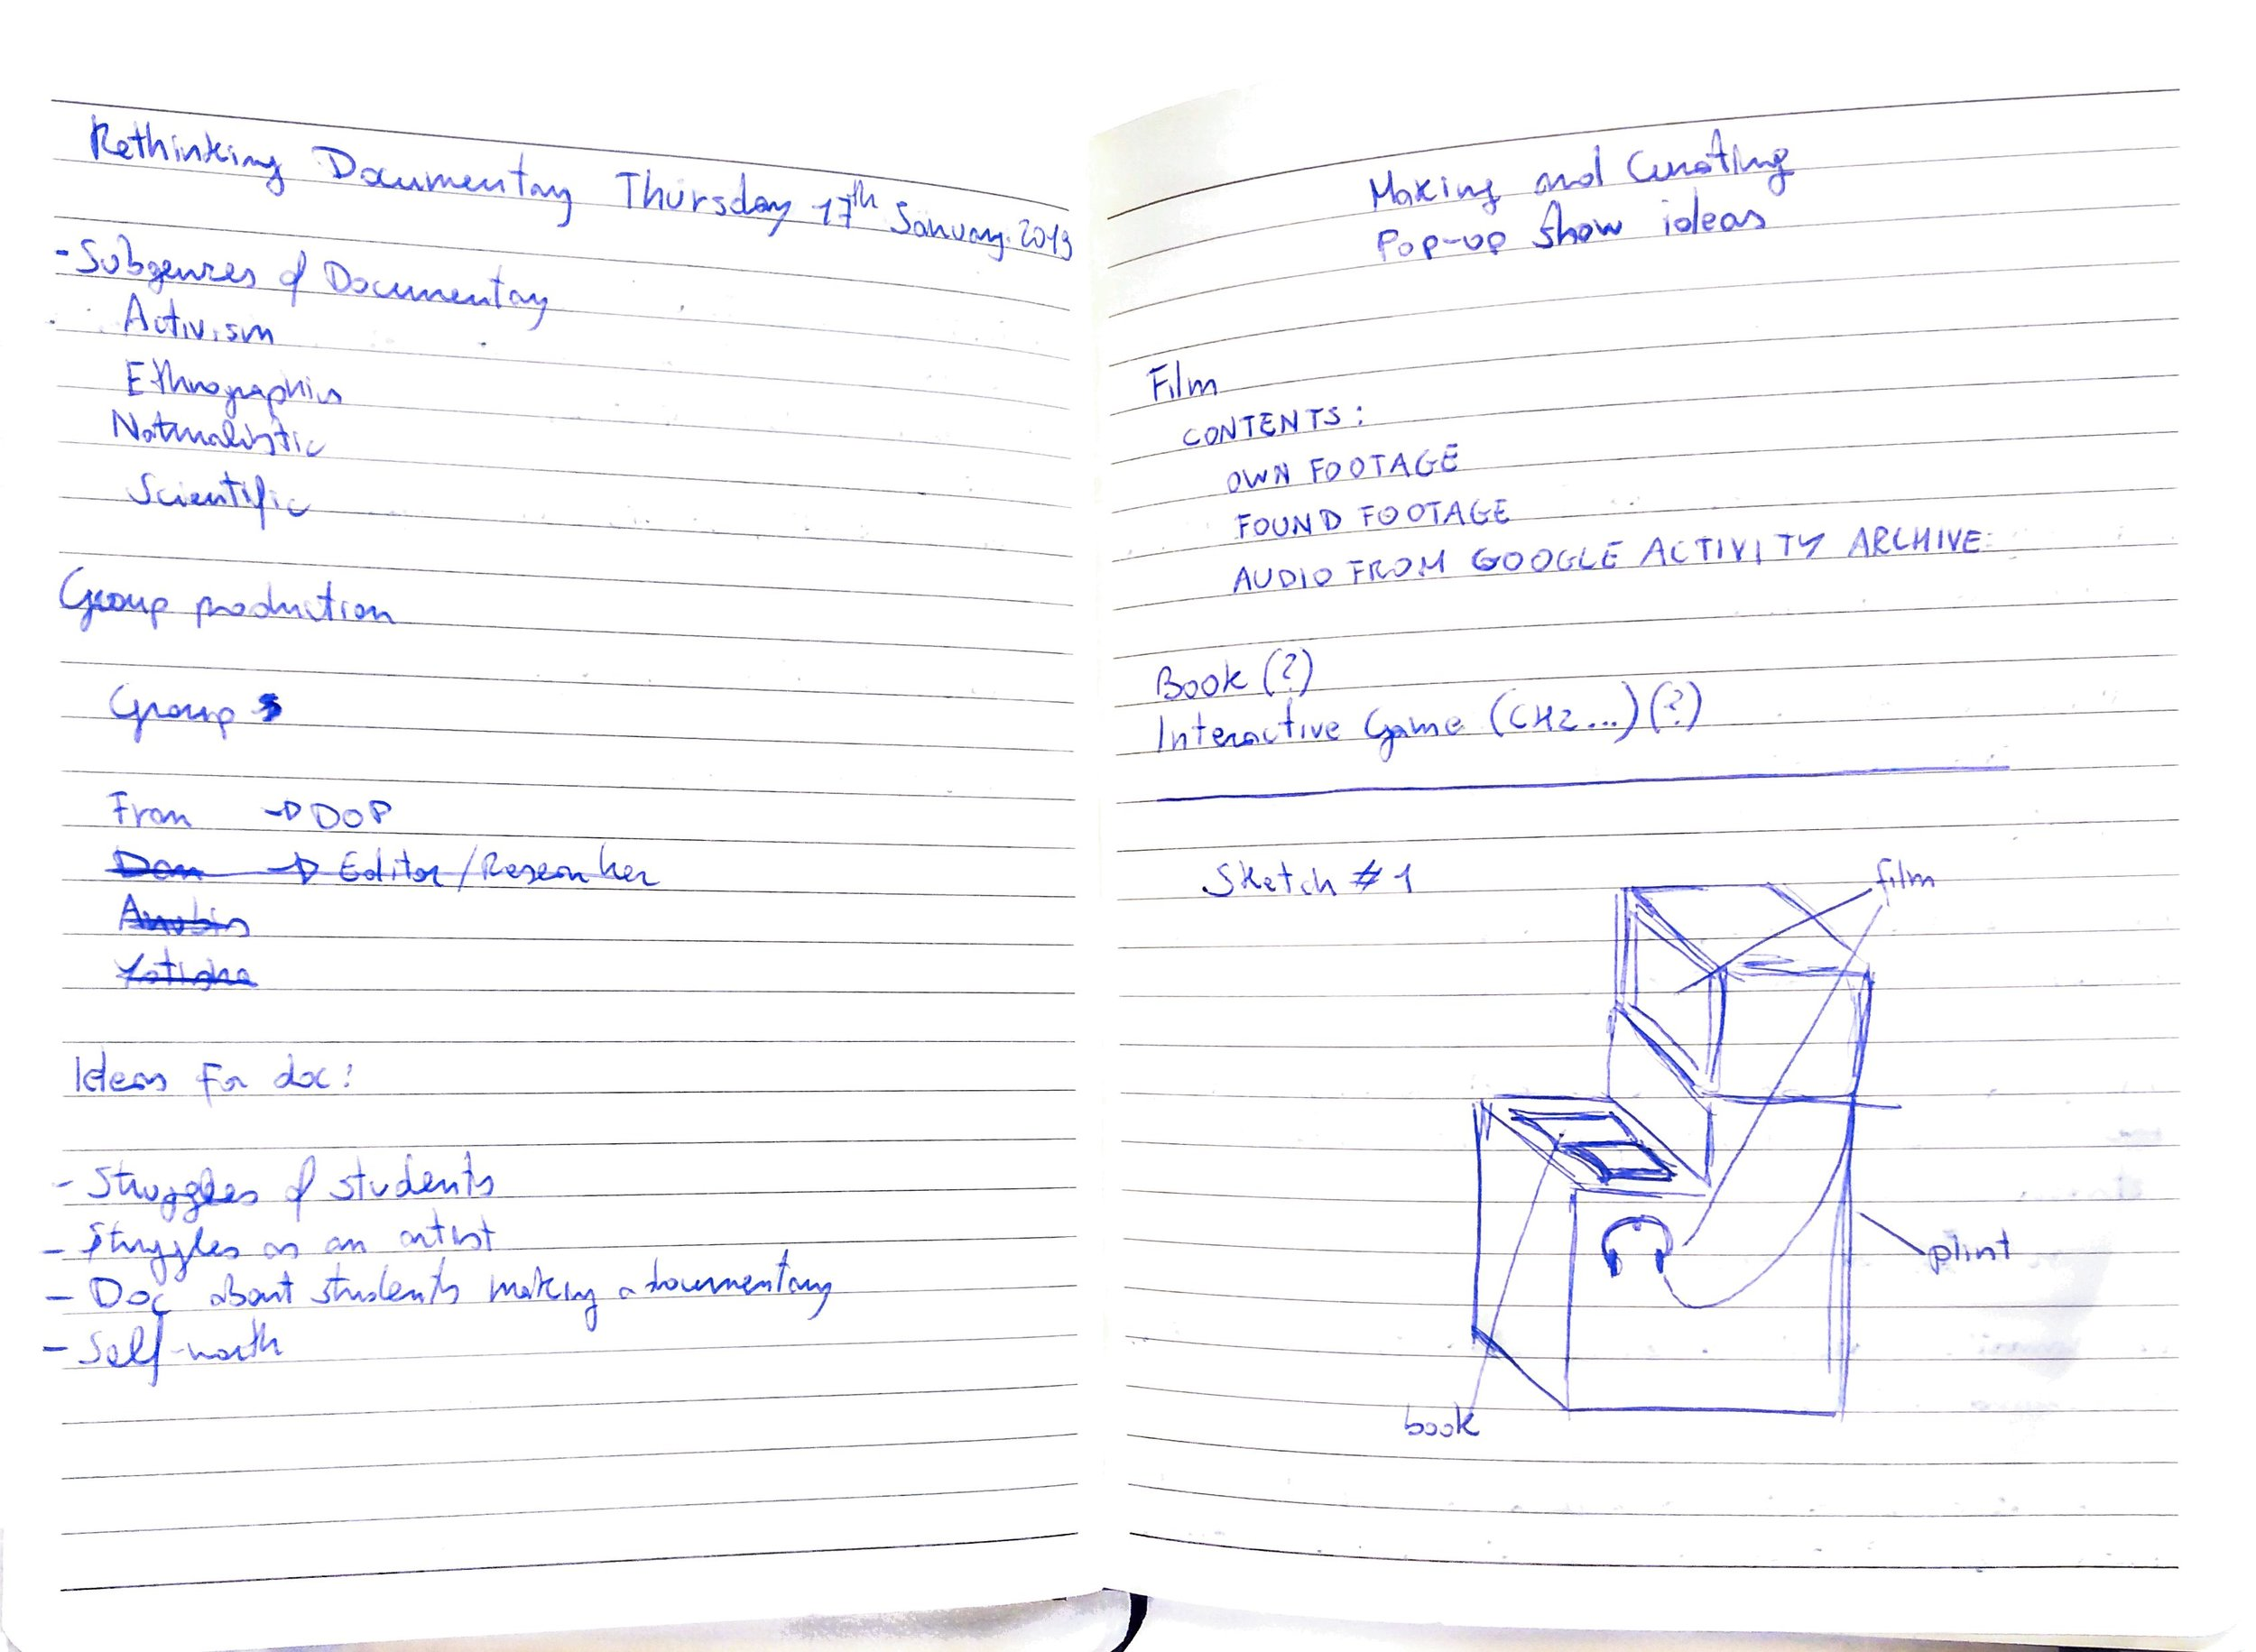 black and pink notebooks_Page_20_Image_0001.jpg